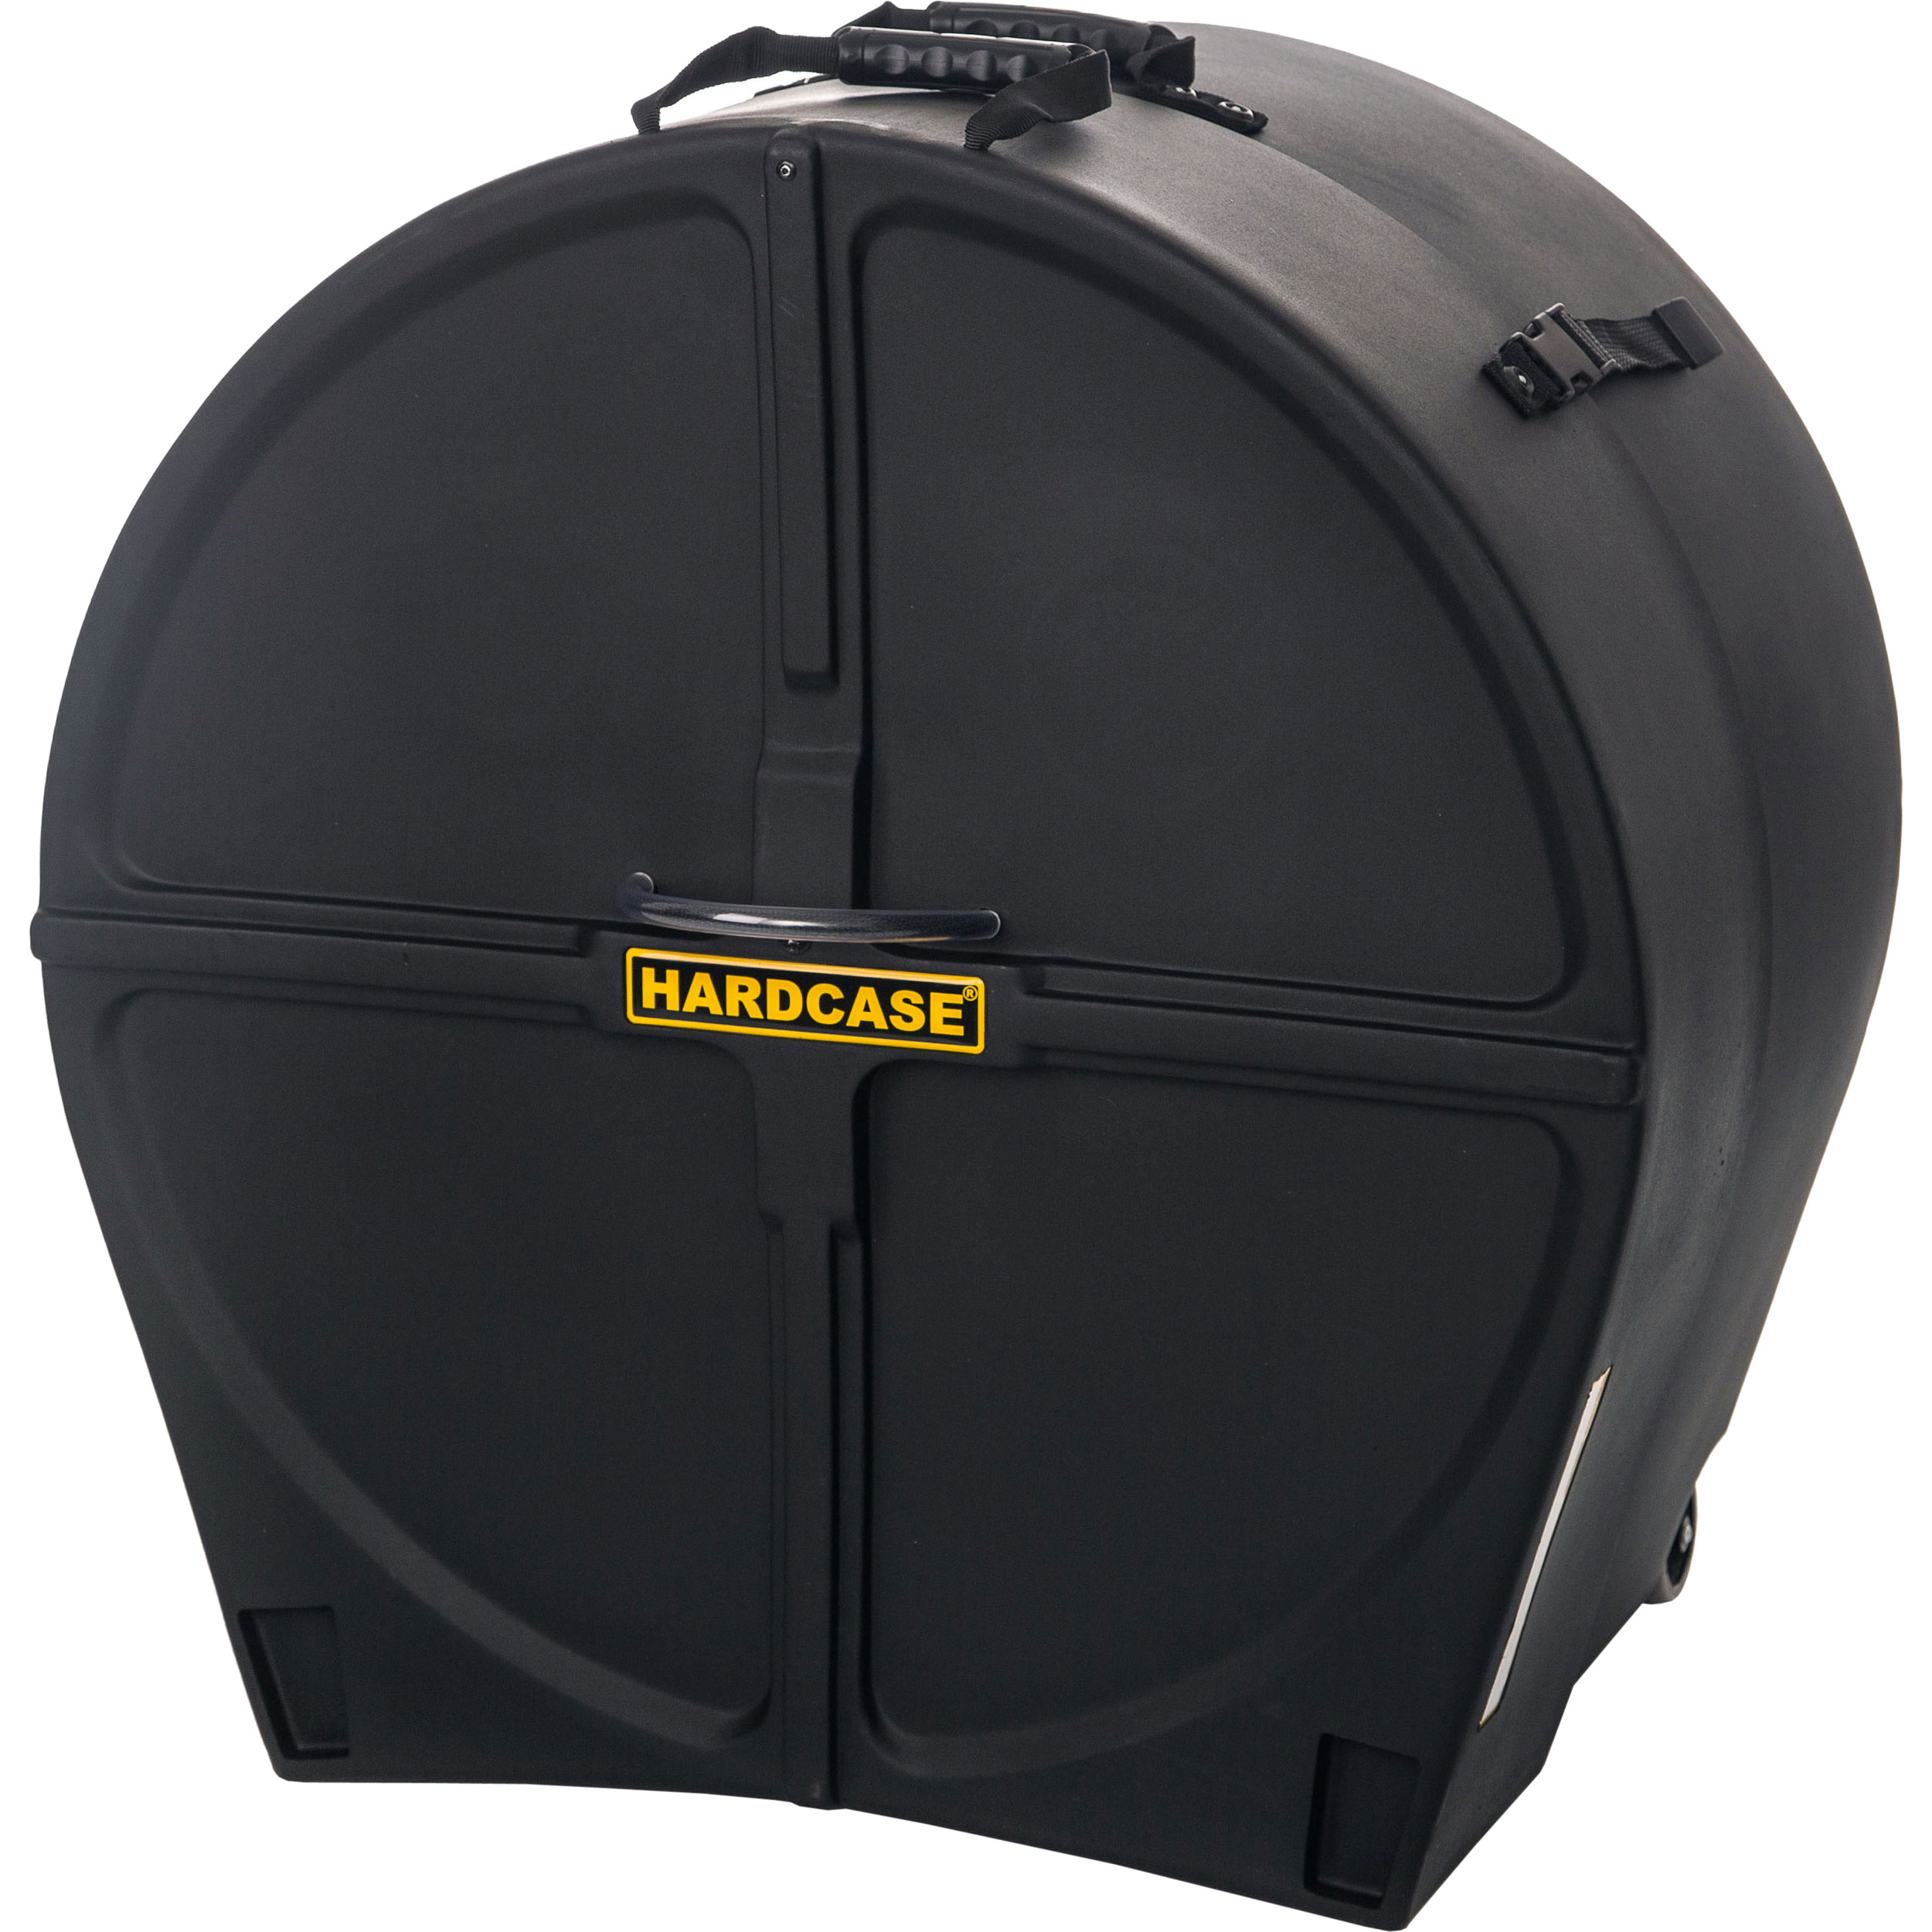 "Hardcase 24"" (Diameter) x 16-to-20"" (Deep) Bass Drum Case with Wheels"